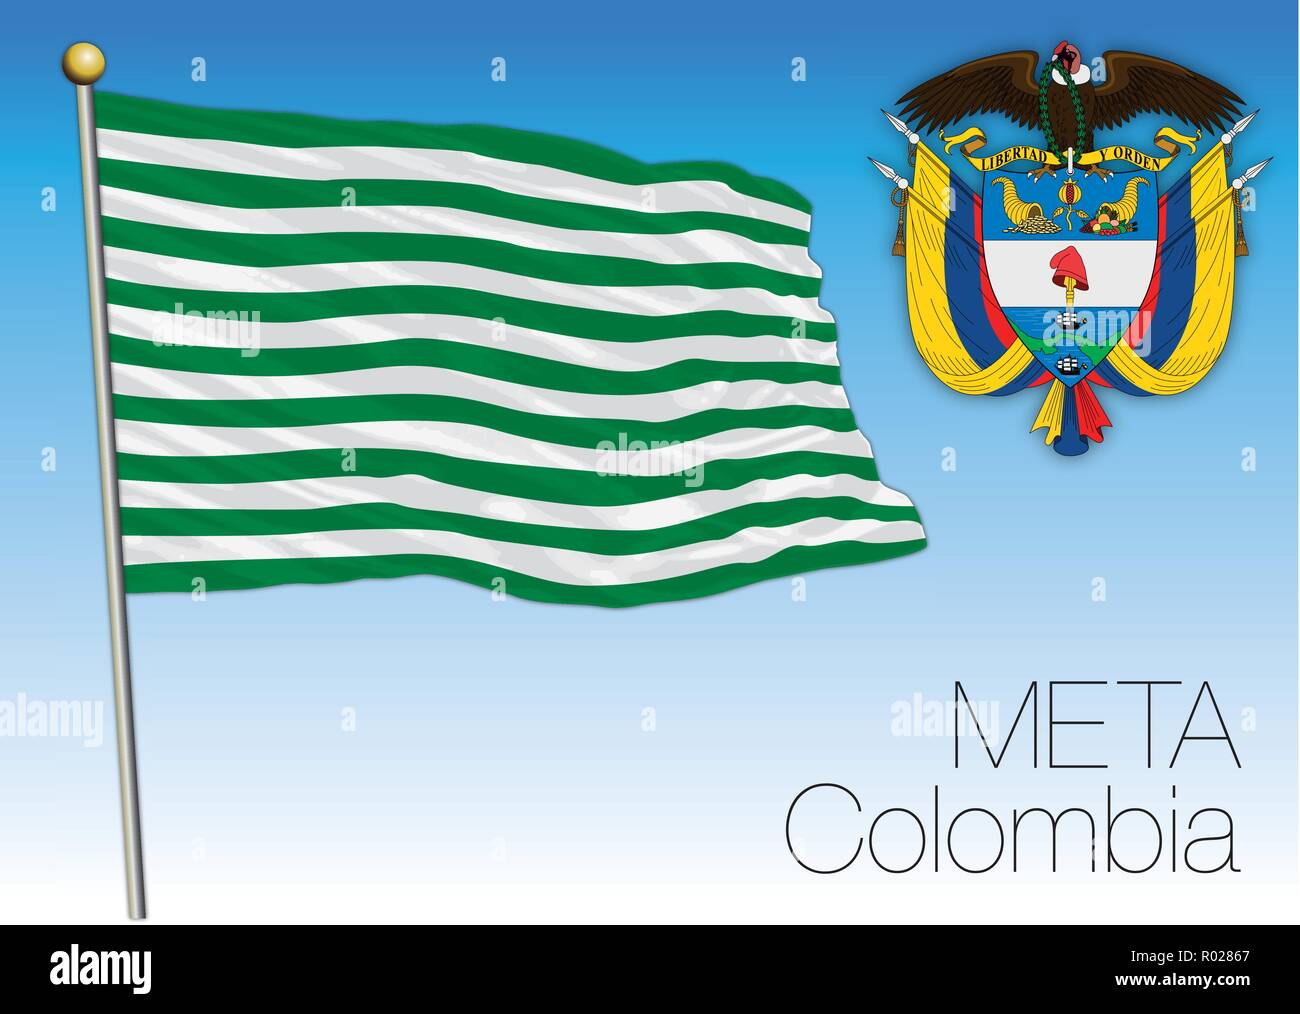 Meta regional flag, Republica de Colombia, vector illustration - Stock Image